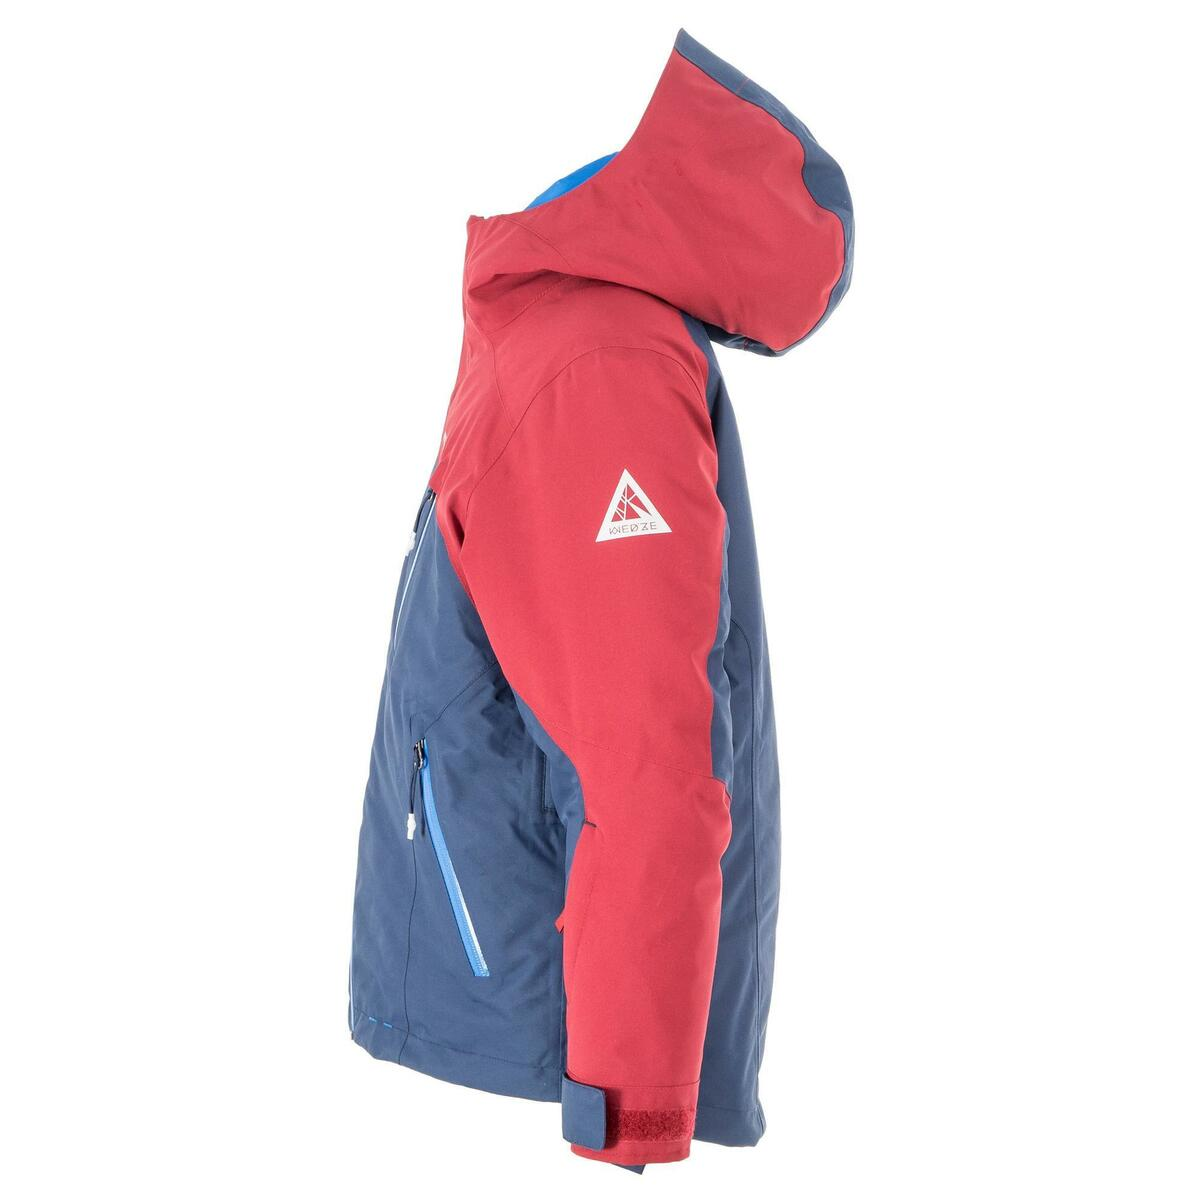 Bild 5 von Skijacke All Mountain Kinder 990 blau bordeaux